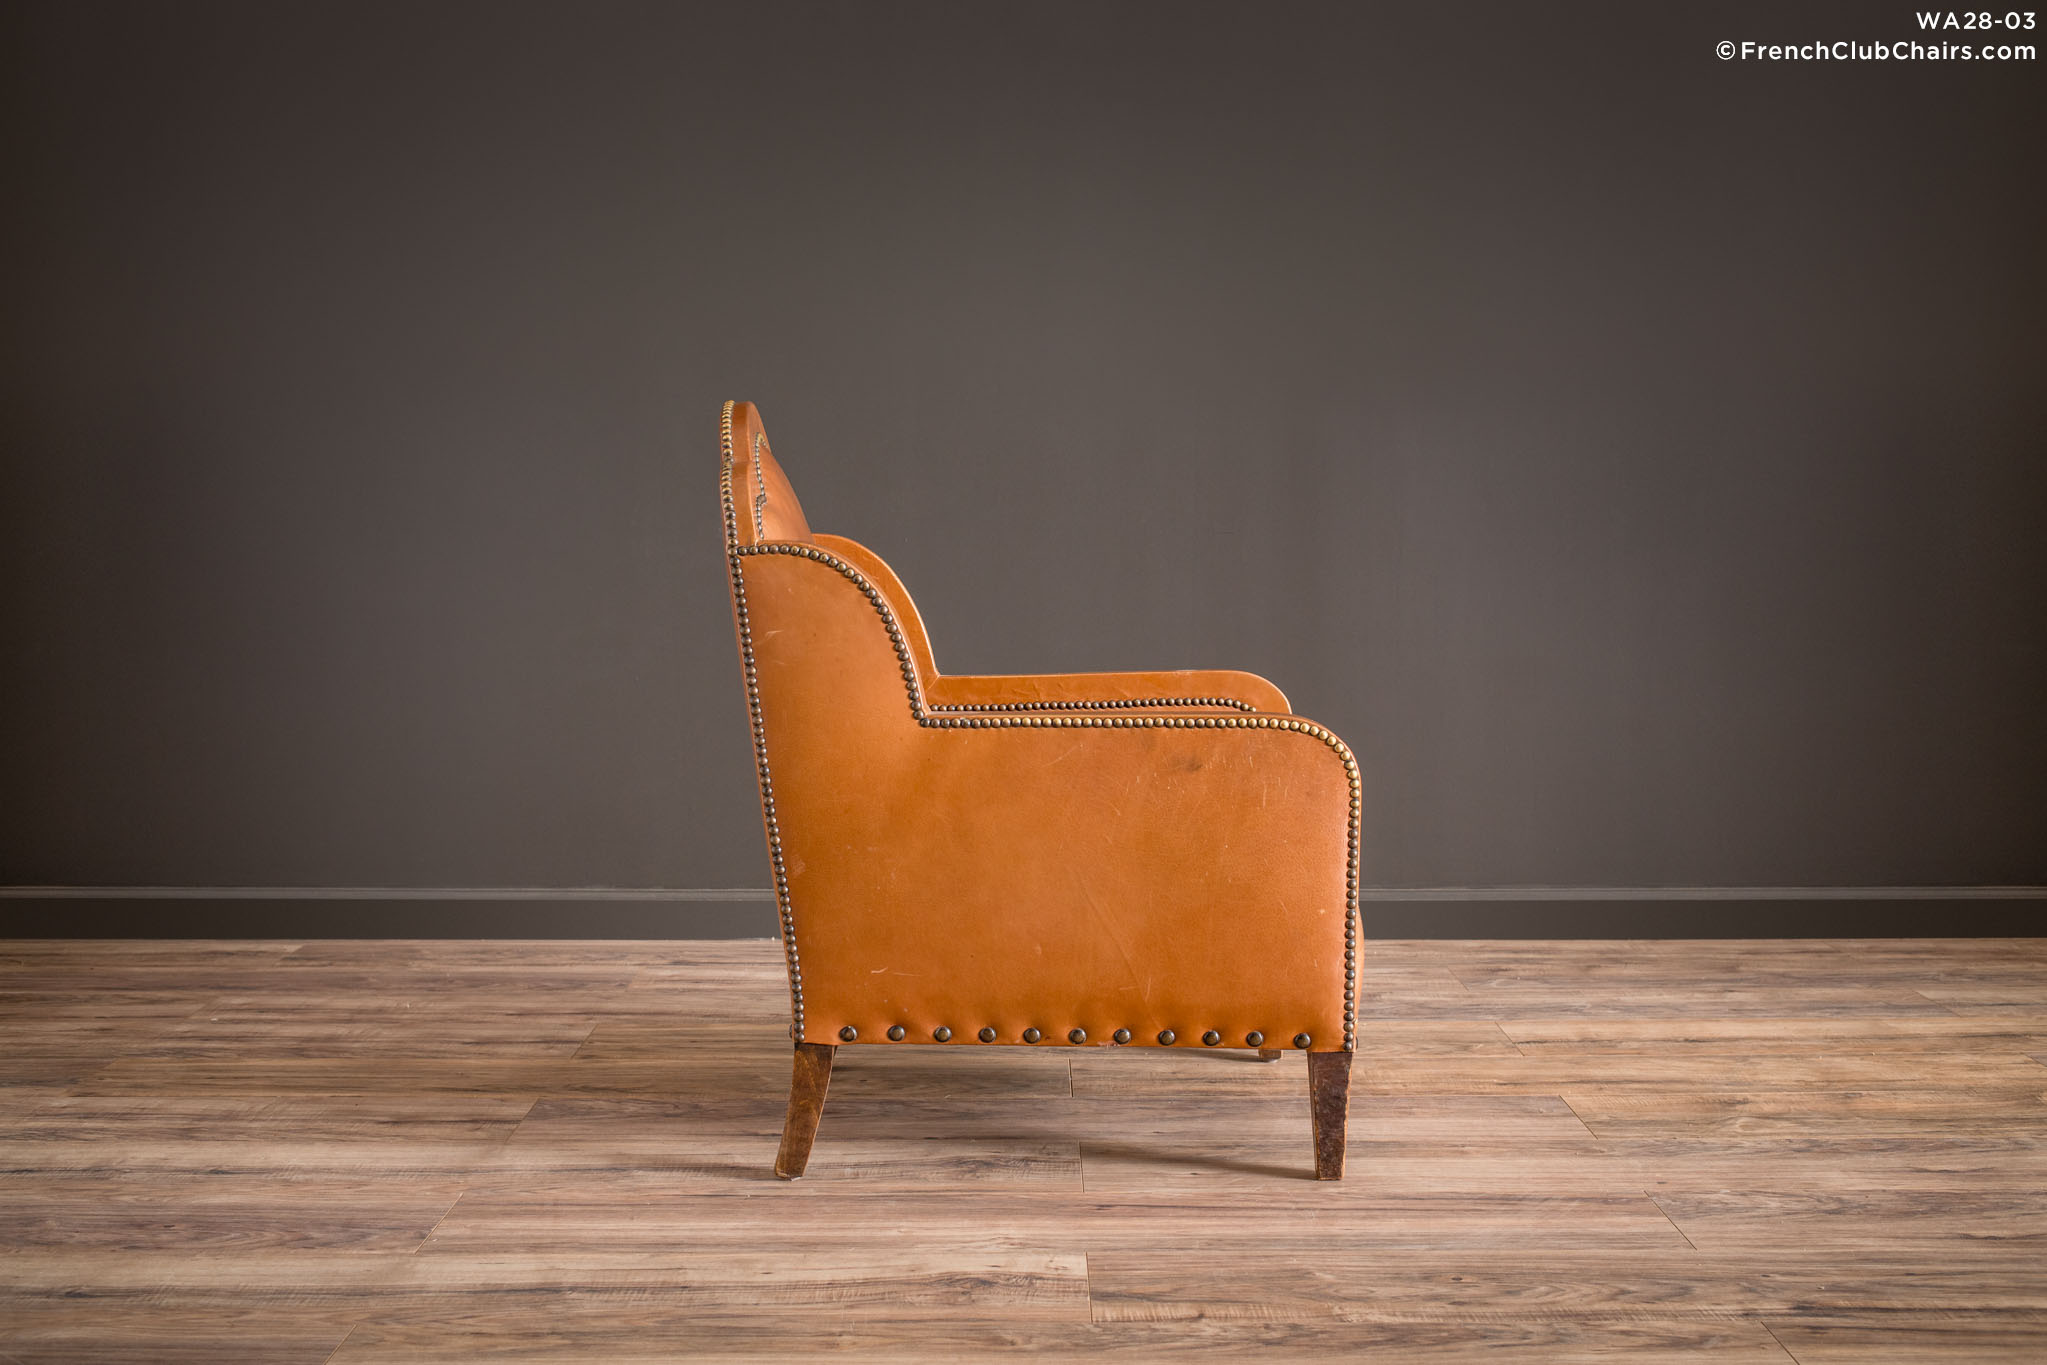 WA_28-03_Deauville_Treffle_Solo_R_3RT1-williams-antiks-leather-french-club-chair-wa_fcccom